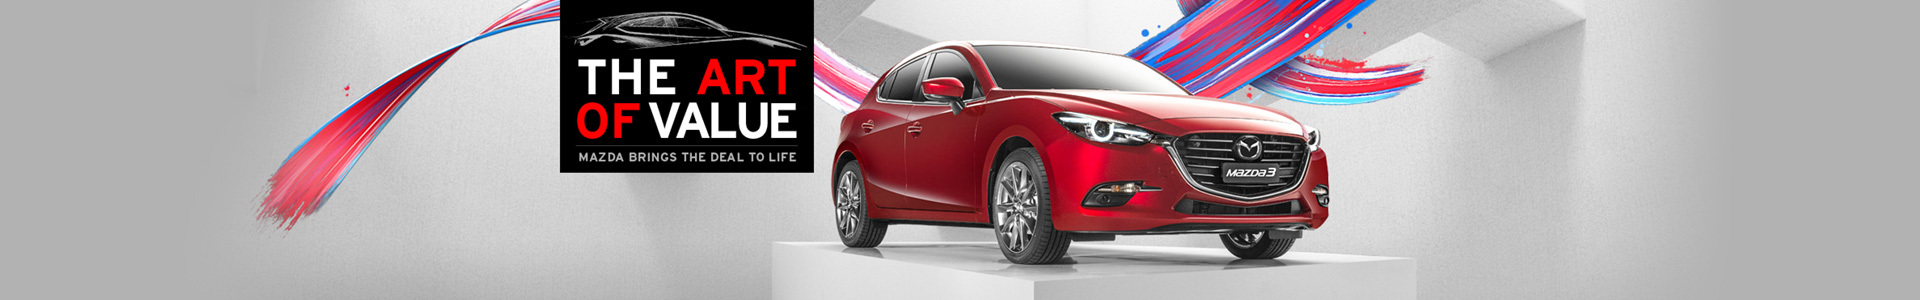 Mazda - National Offer - The Art of Value; Mazda Bring the Deal to Life